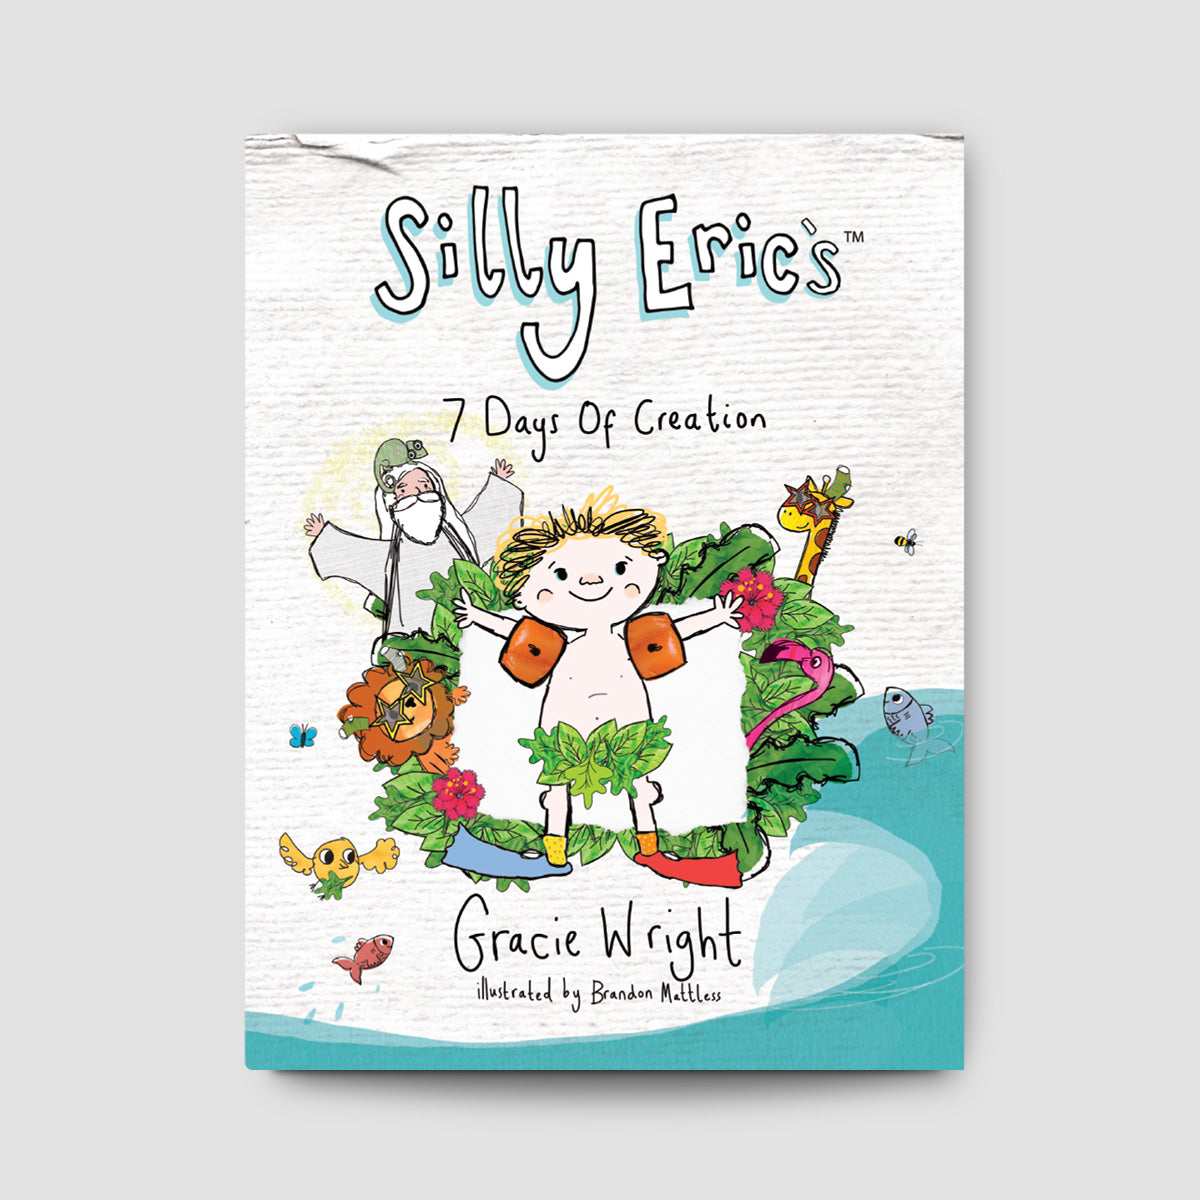 Silly Eric's 7 Days of Creation Storybook